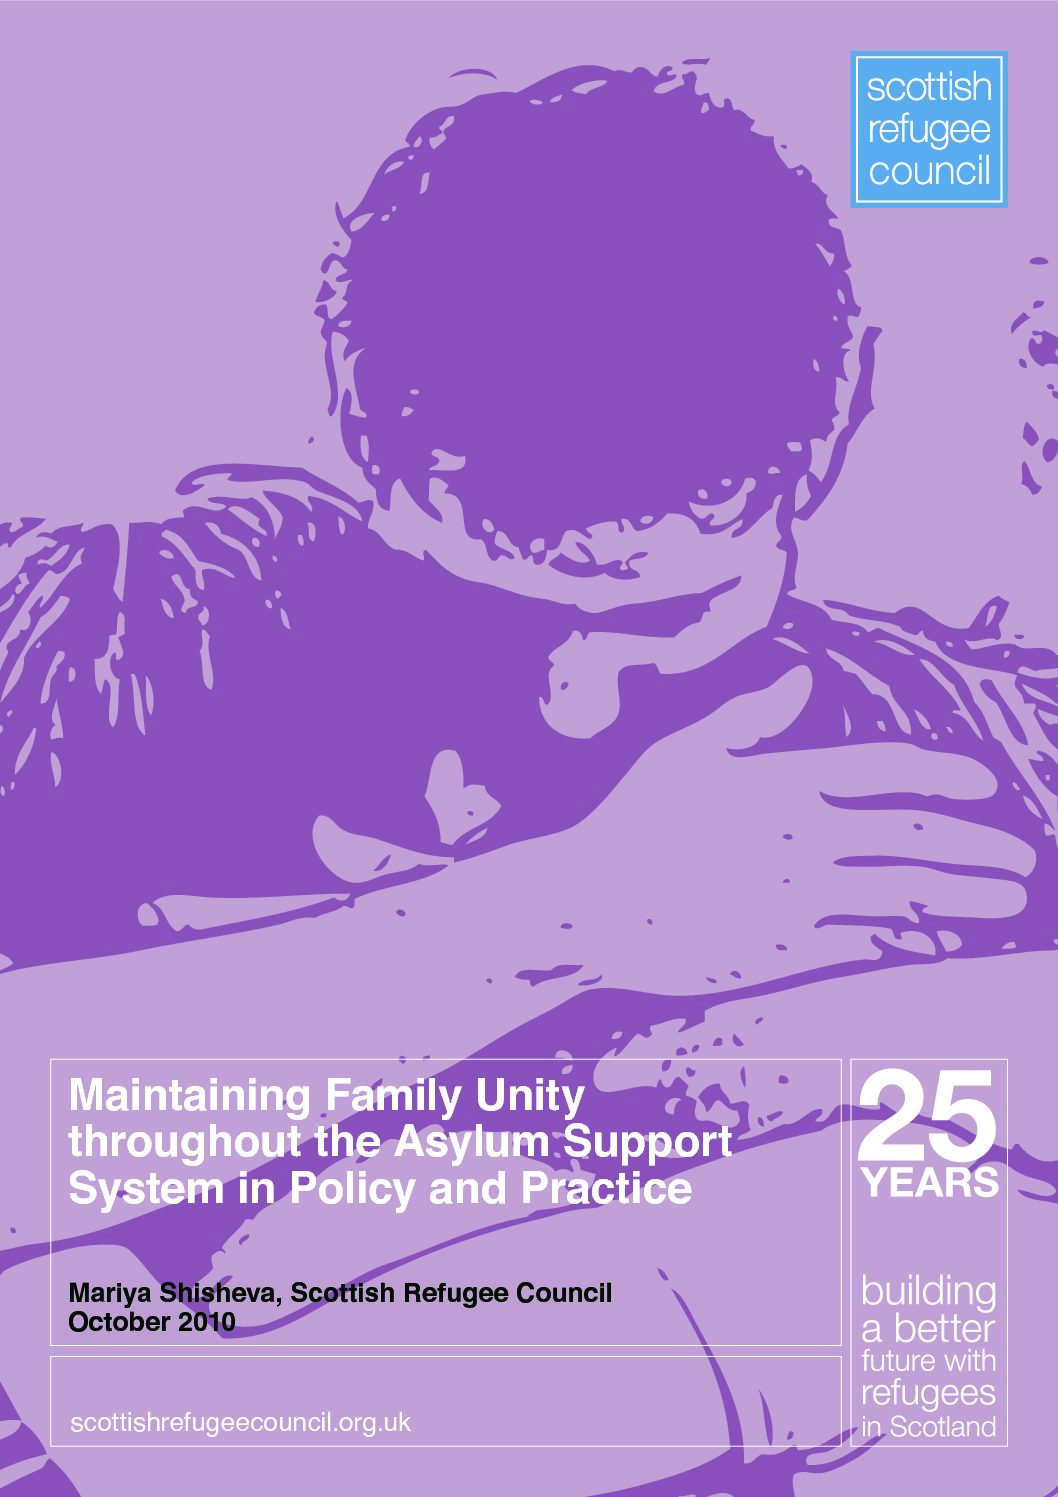 Maintaining-Family-Unity-Throughout-the-Asylum-Support-System-in-Policy-and-Practice-pdf